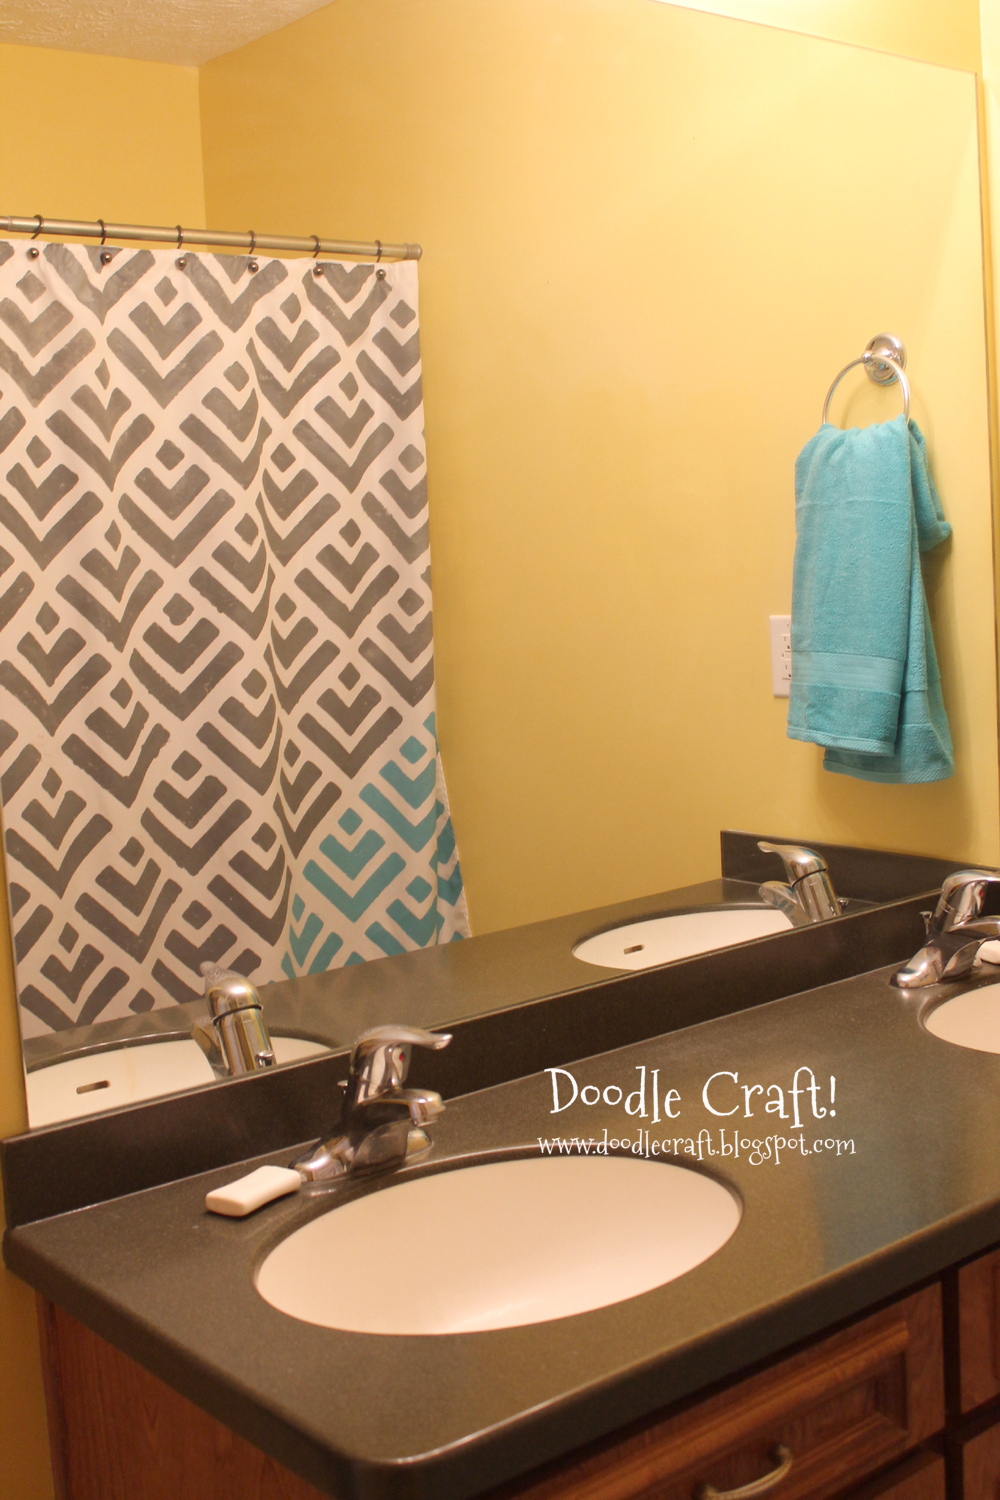 doodlecraft stencil a shower curtain with cutting edge stencils and a give away. Black Bedroom Furniture Sets. Home Design Ideas